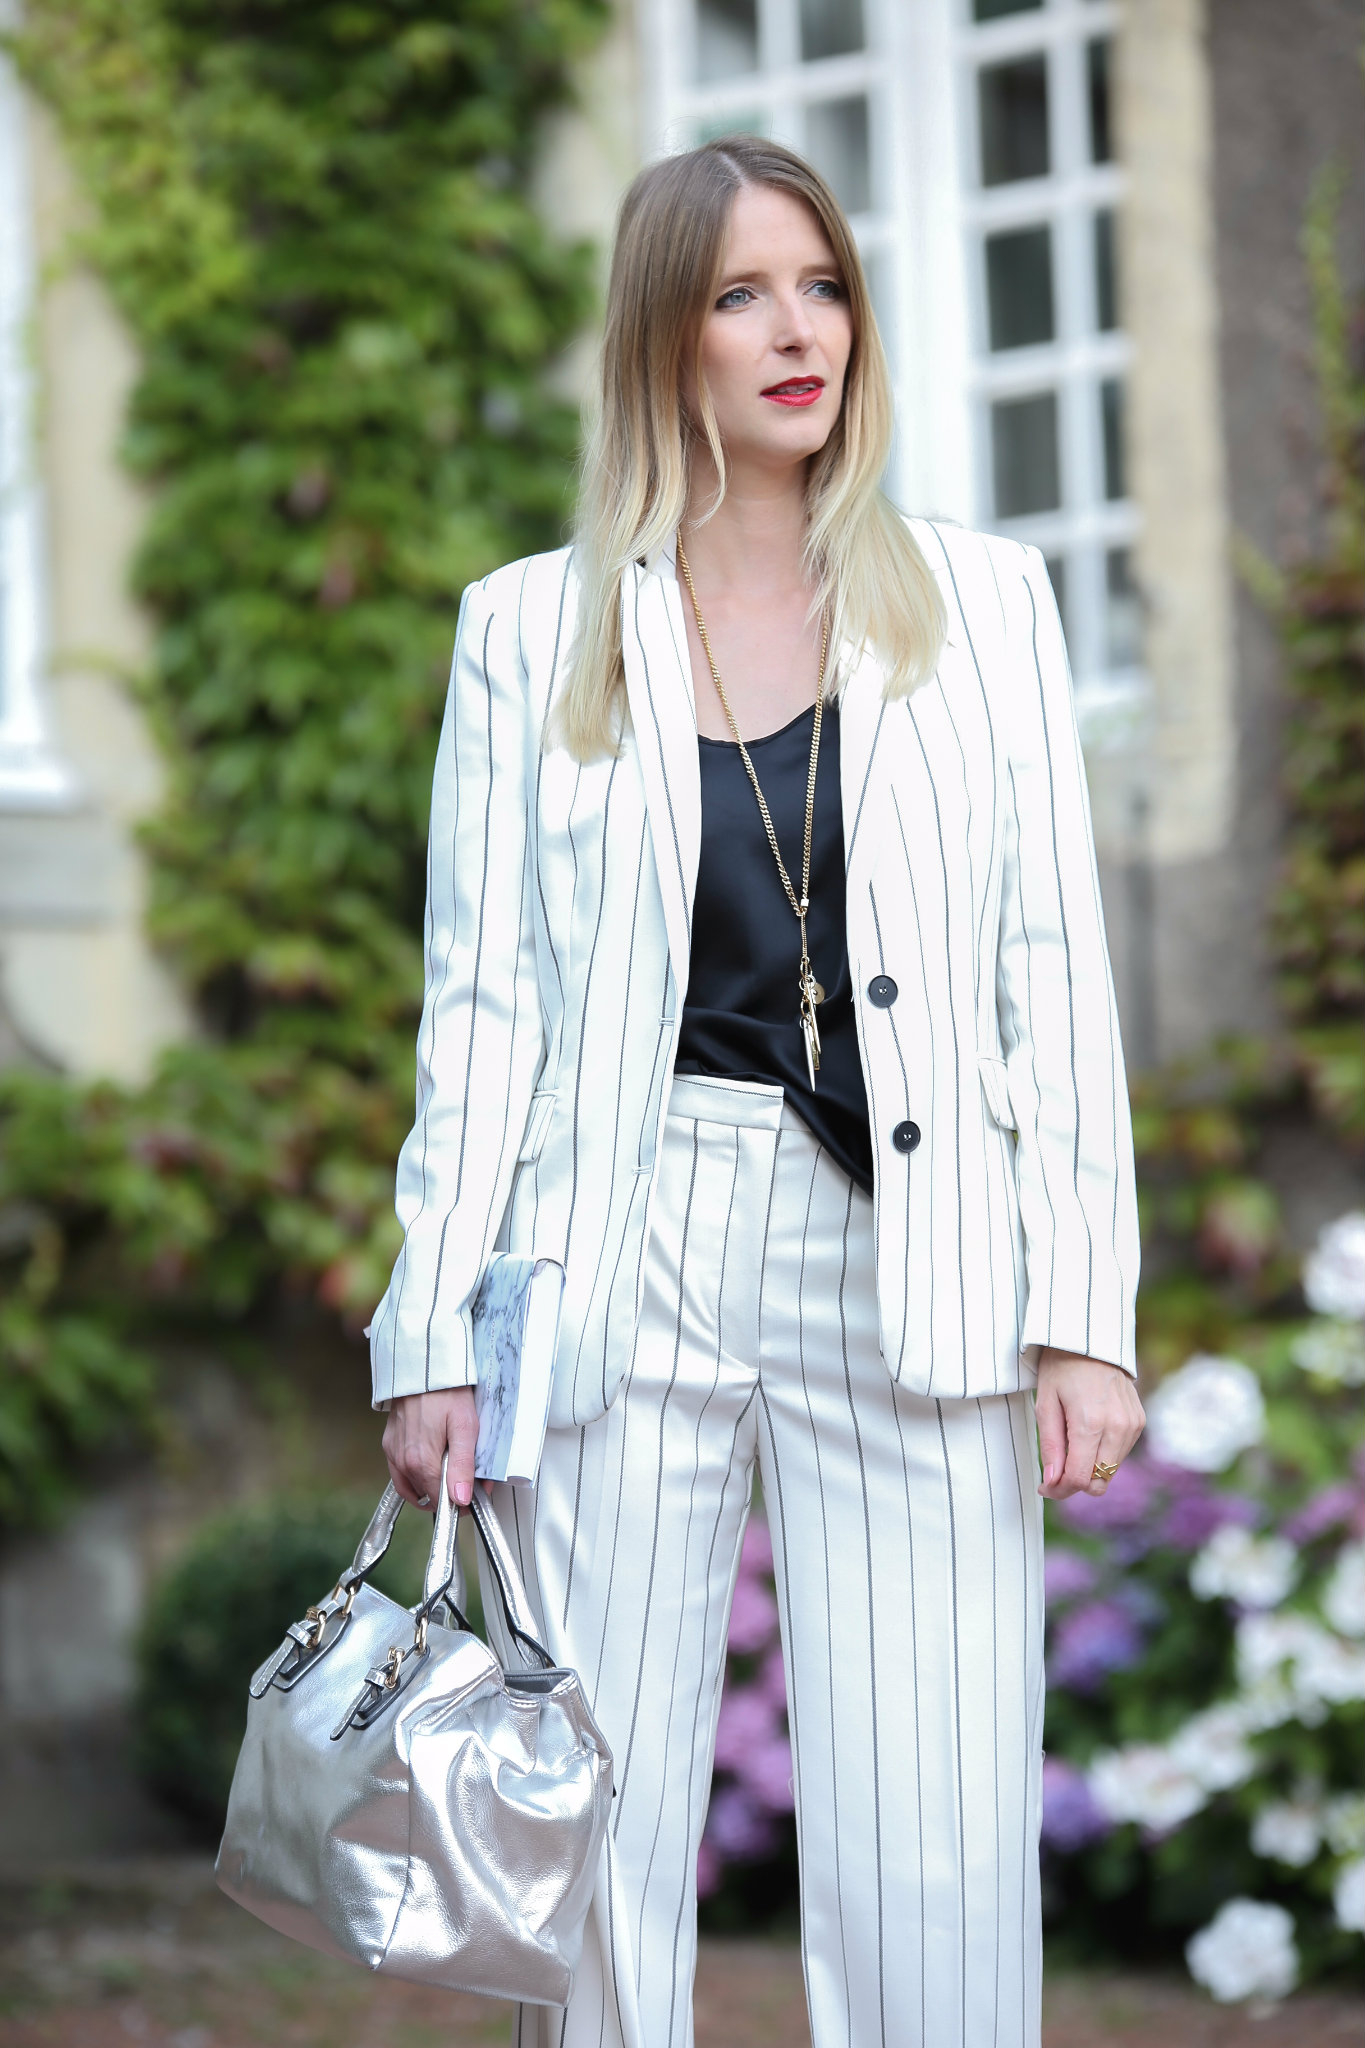 MOD-by-Monique-Looks-Girl-Boss-Pinstriped-Suit-5-pix